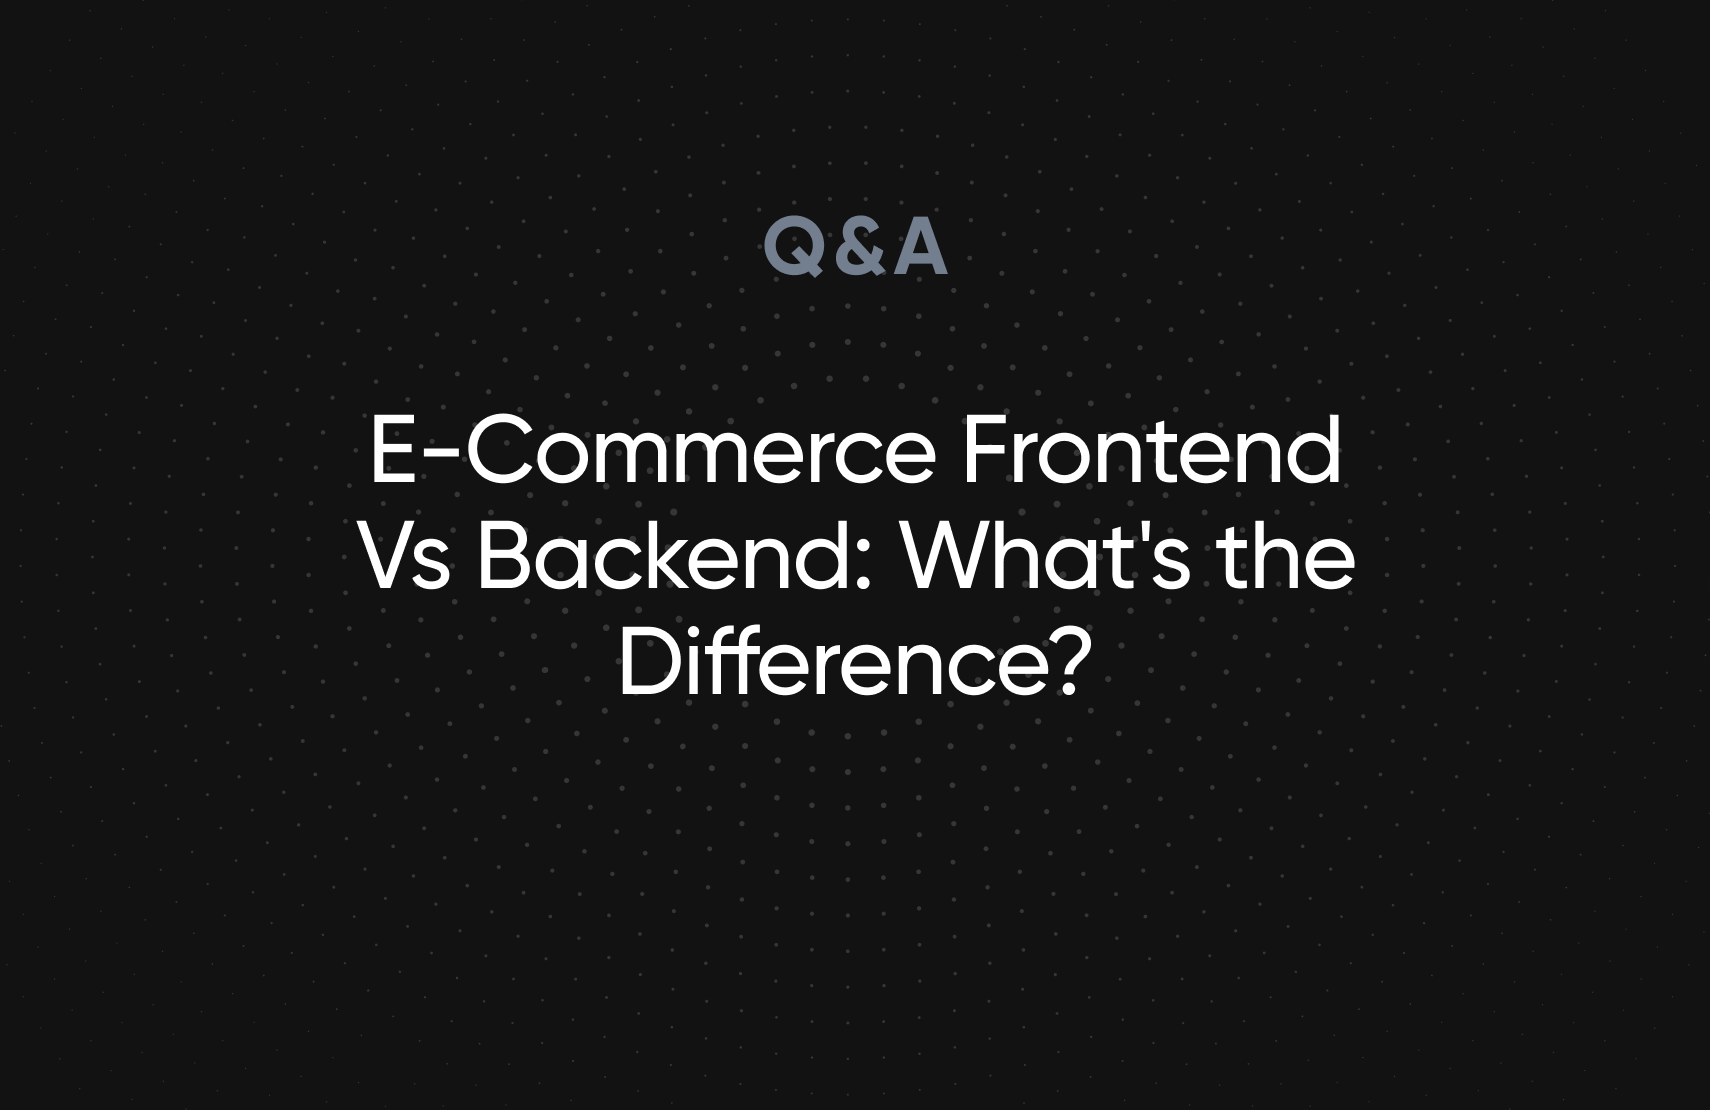 E-Commerce Frontend Vs Backend: What's the Difference?